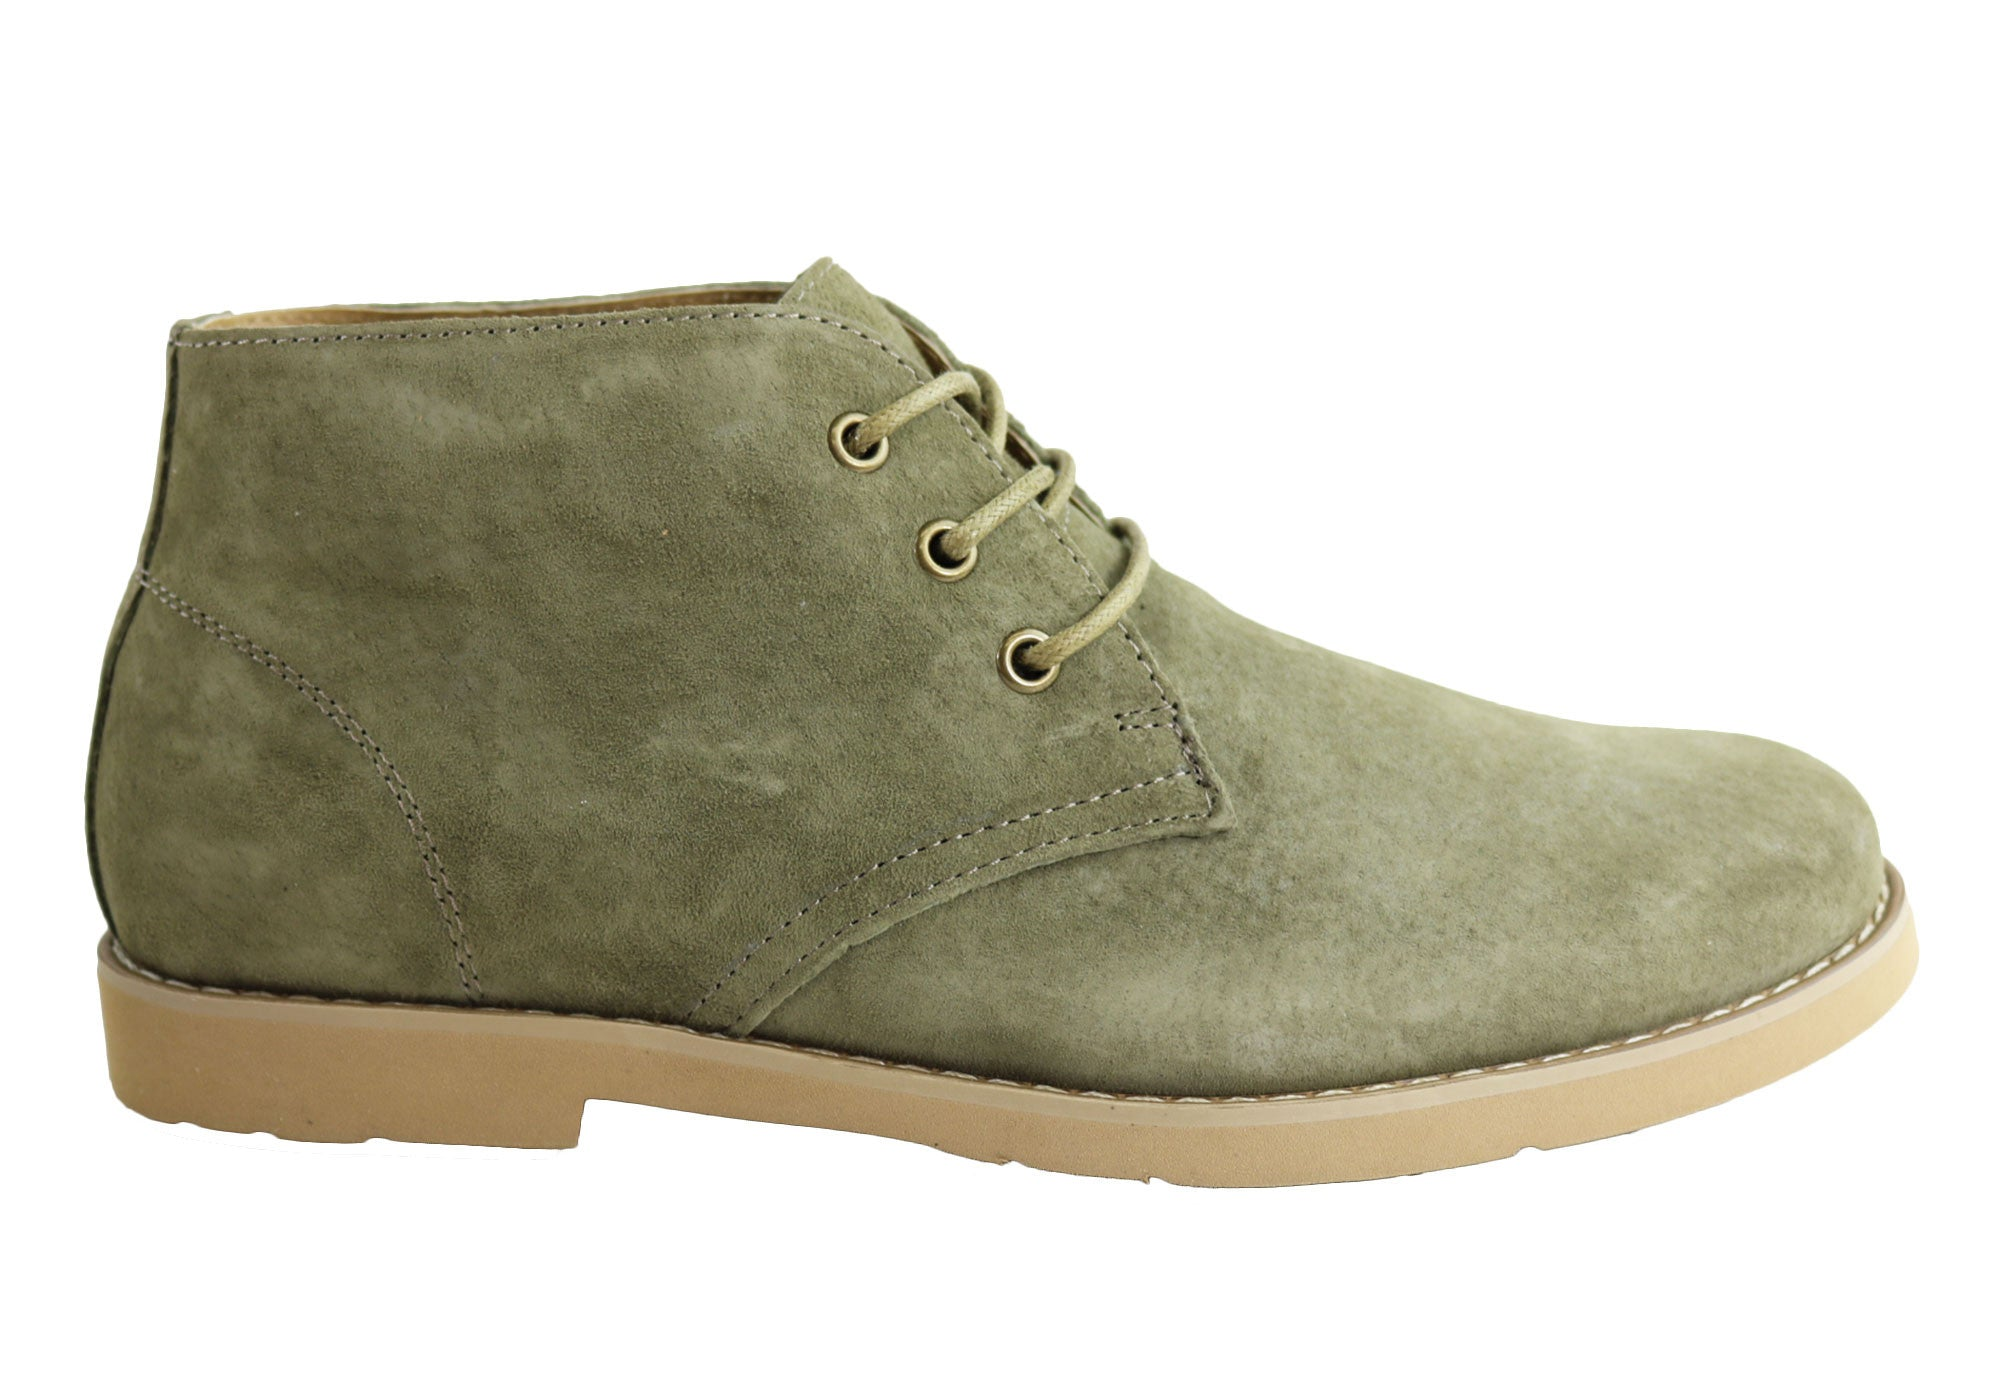 d2486f56bd069 Hush Puppies Delphine Womens Suede Lace Up Comfortable Ankle Boots ...